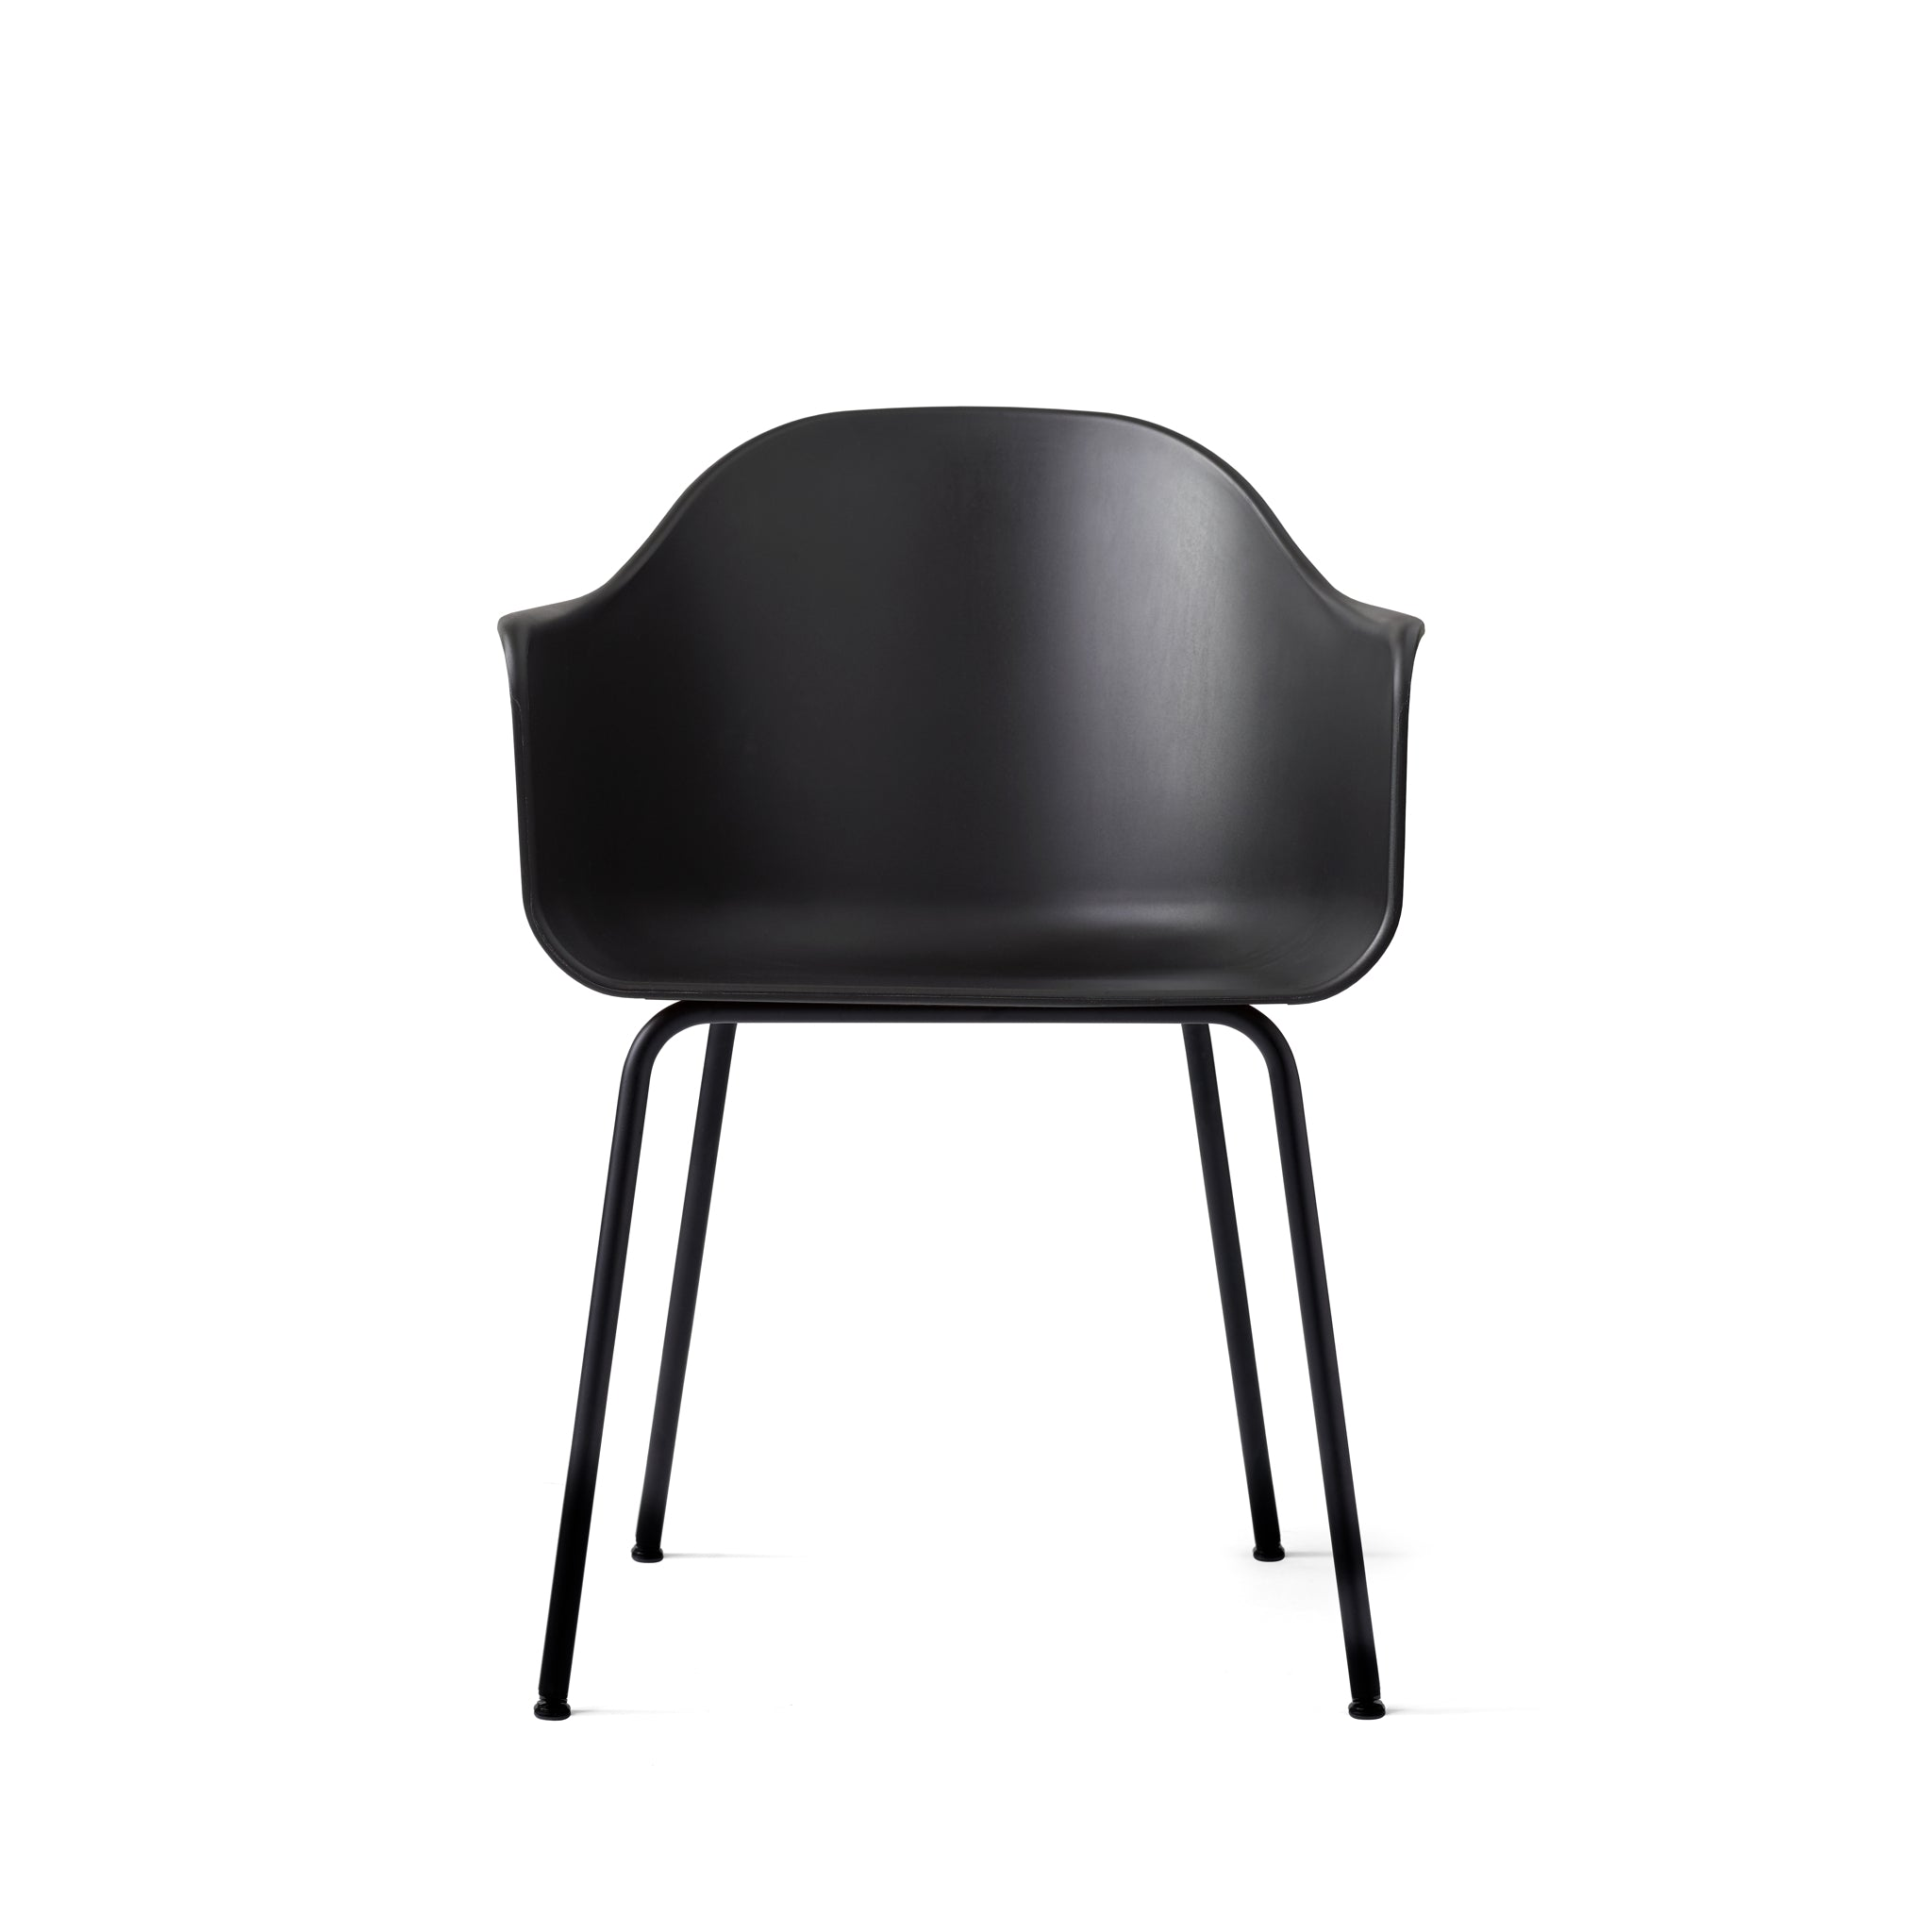 Harbour Chair Unupholstered with Steel Base by Menu - haus®